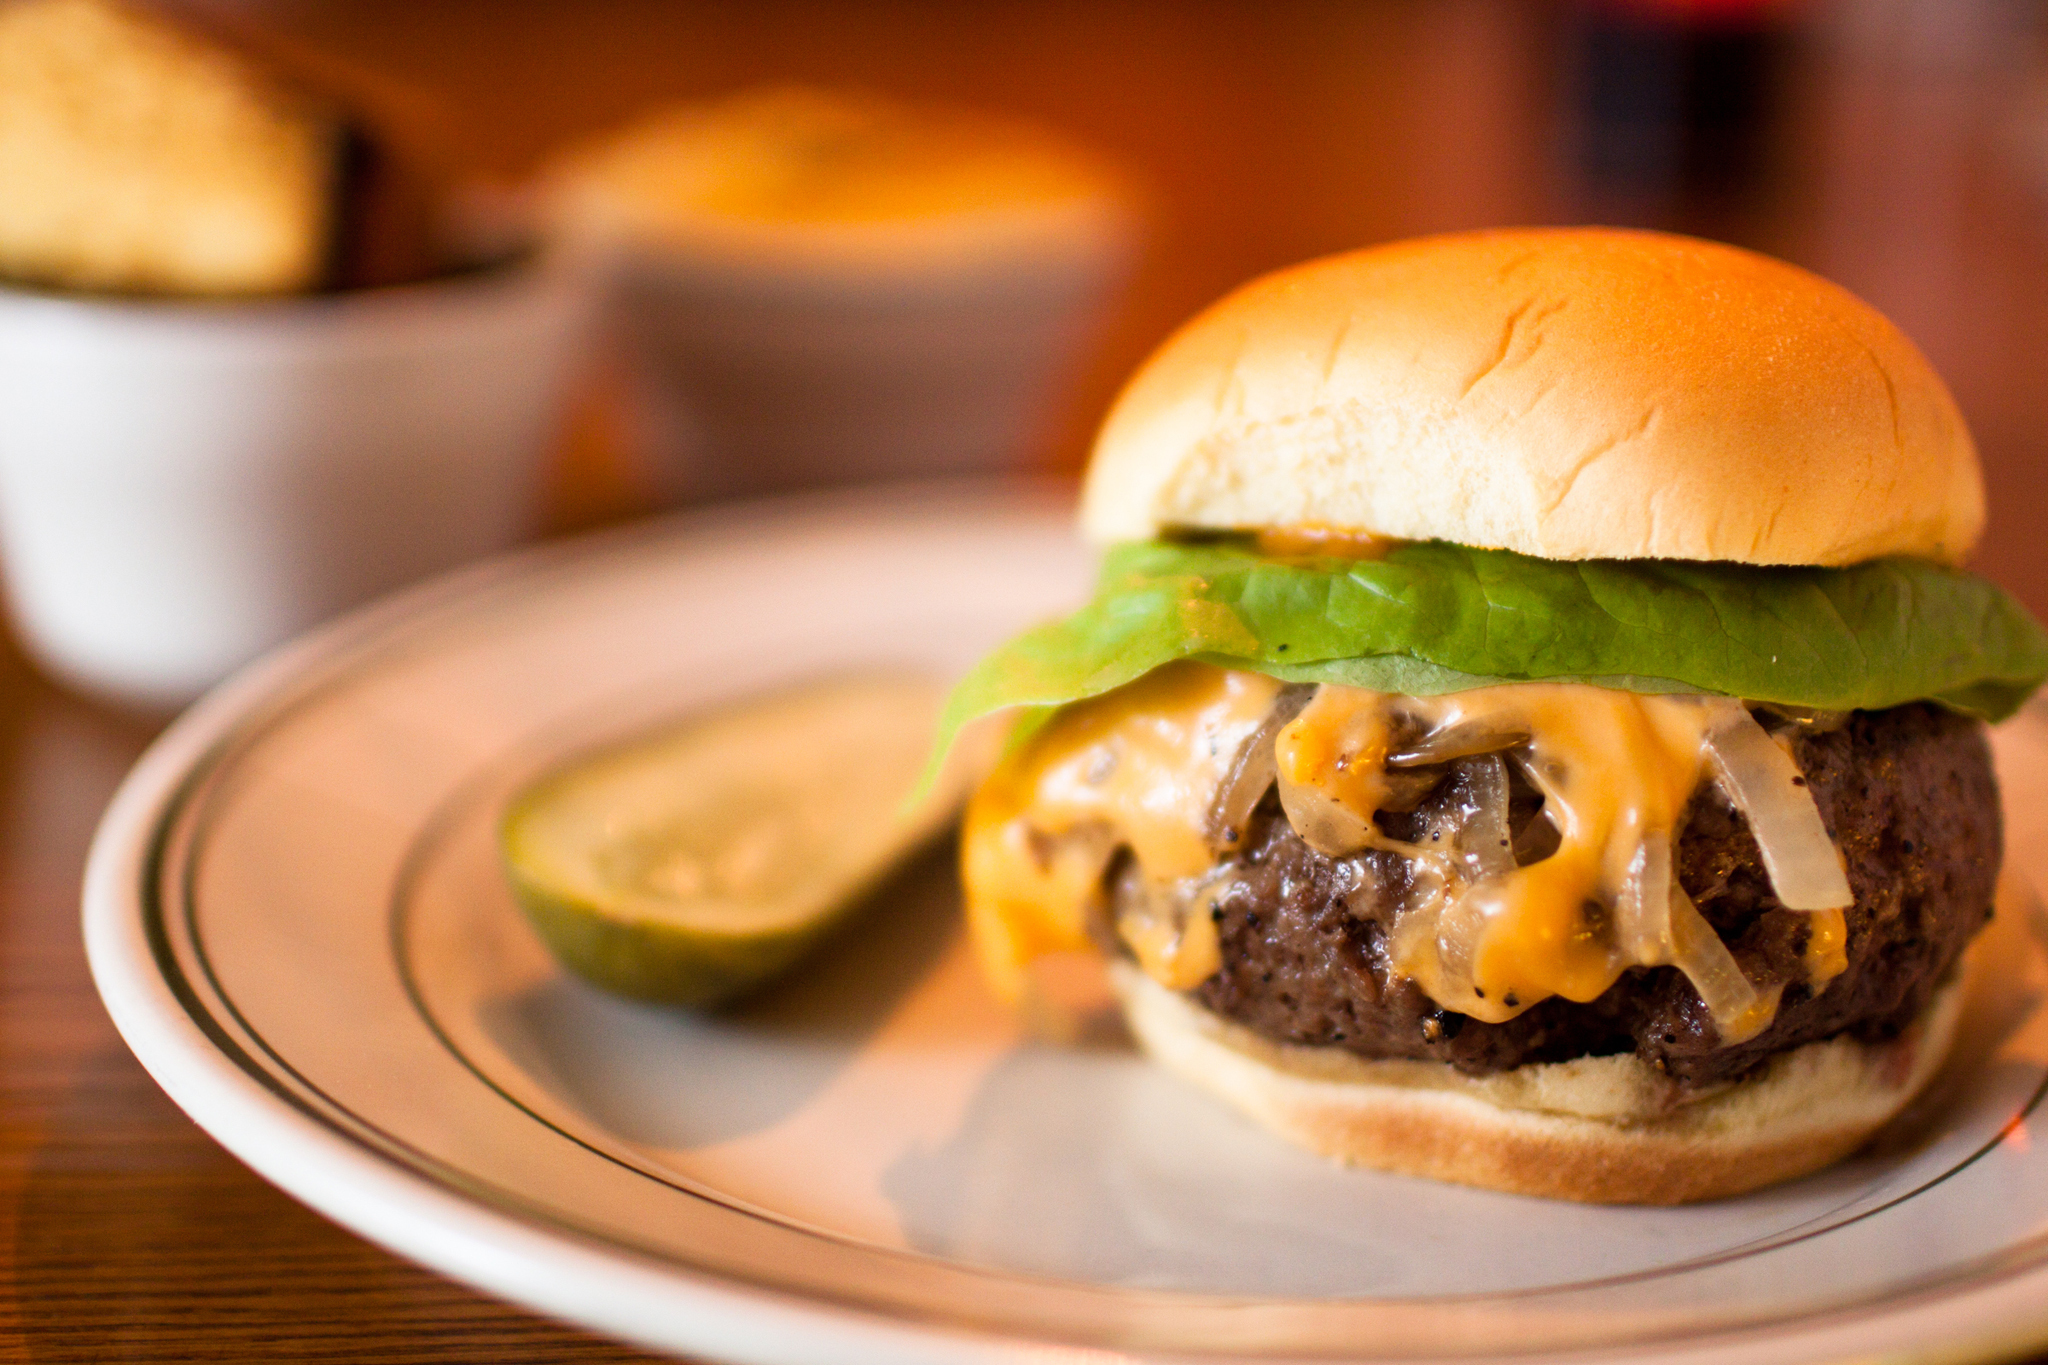 The best new burgers (2012)